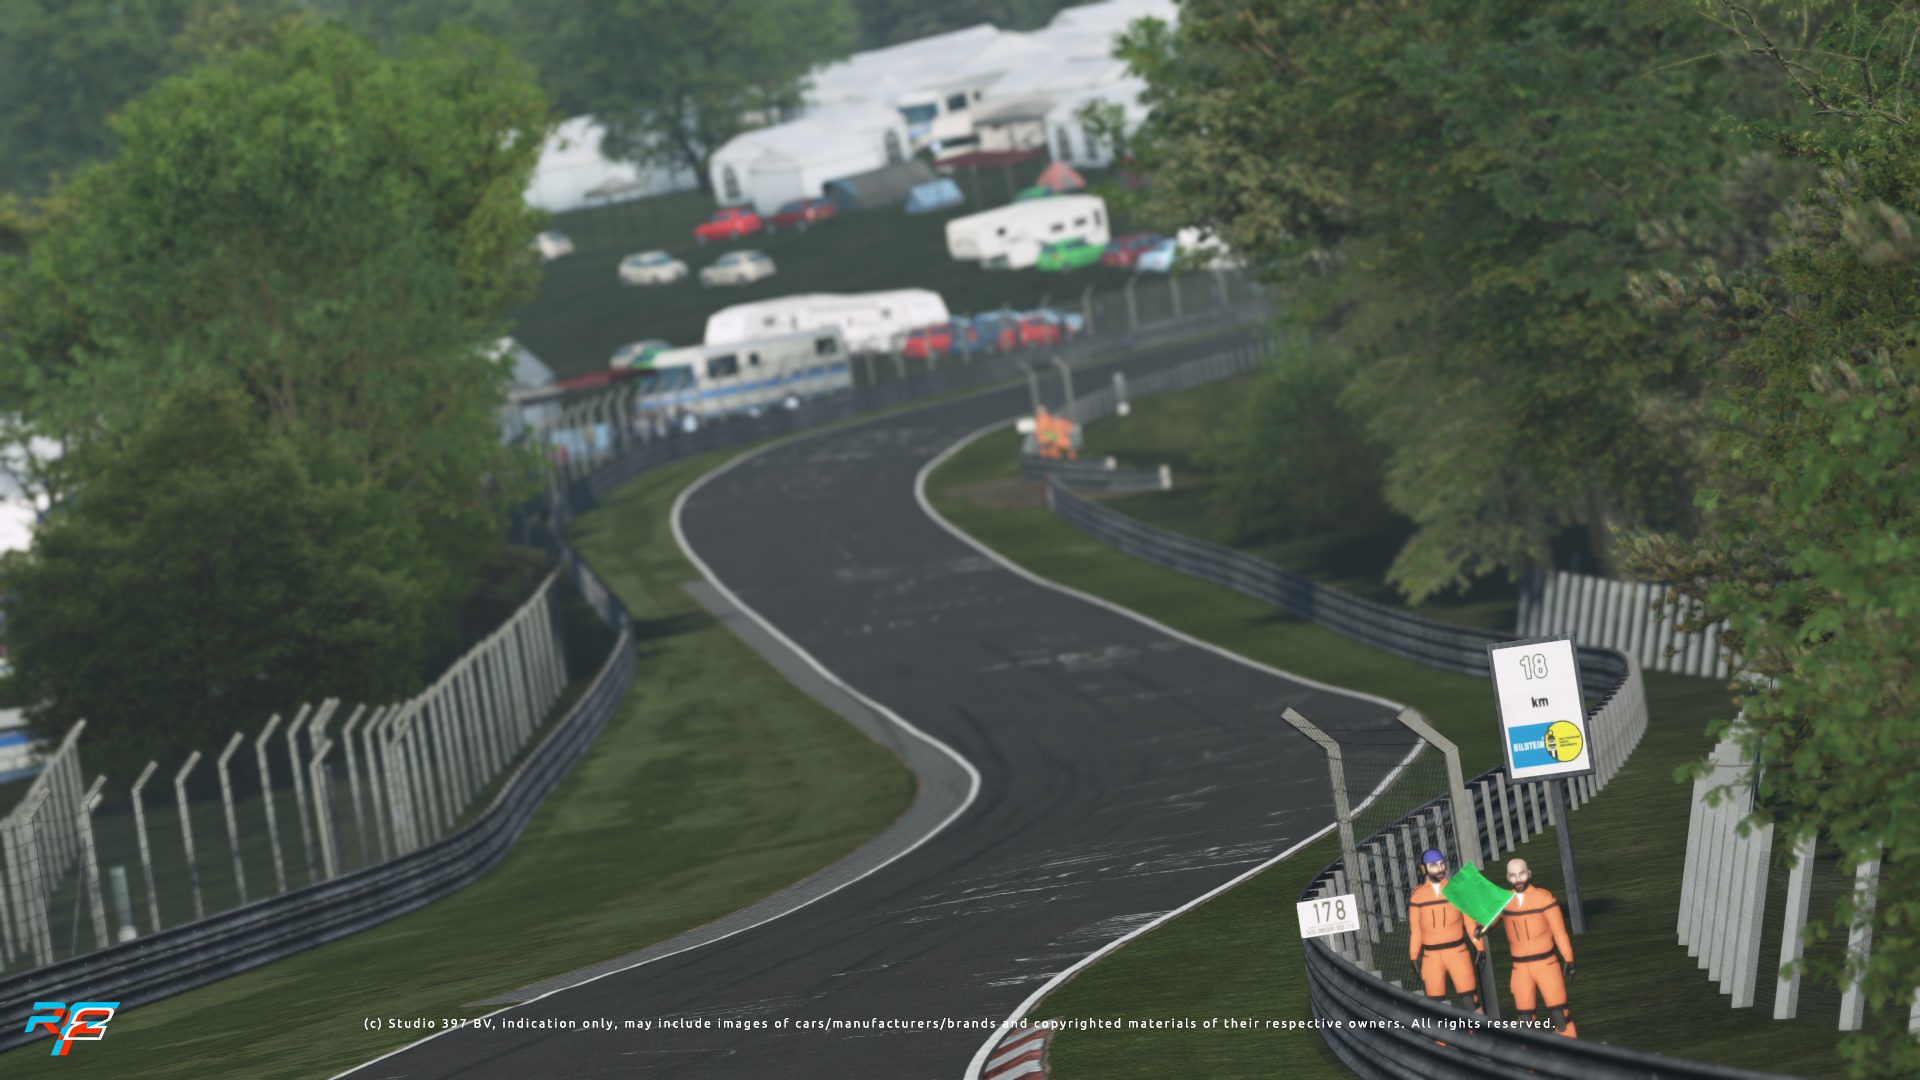 nordschleife_guide_27-1920x1080